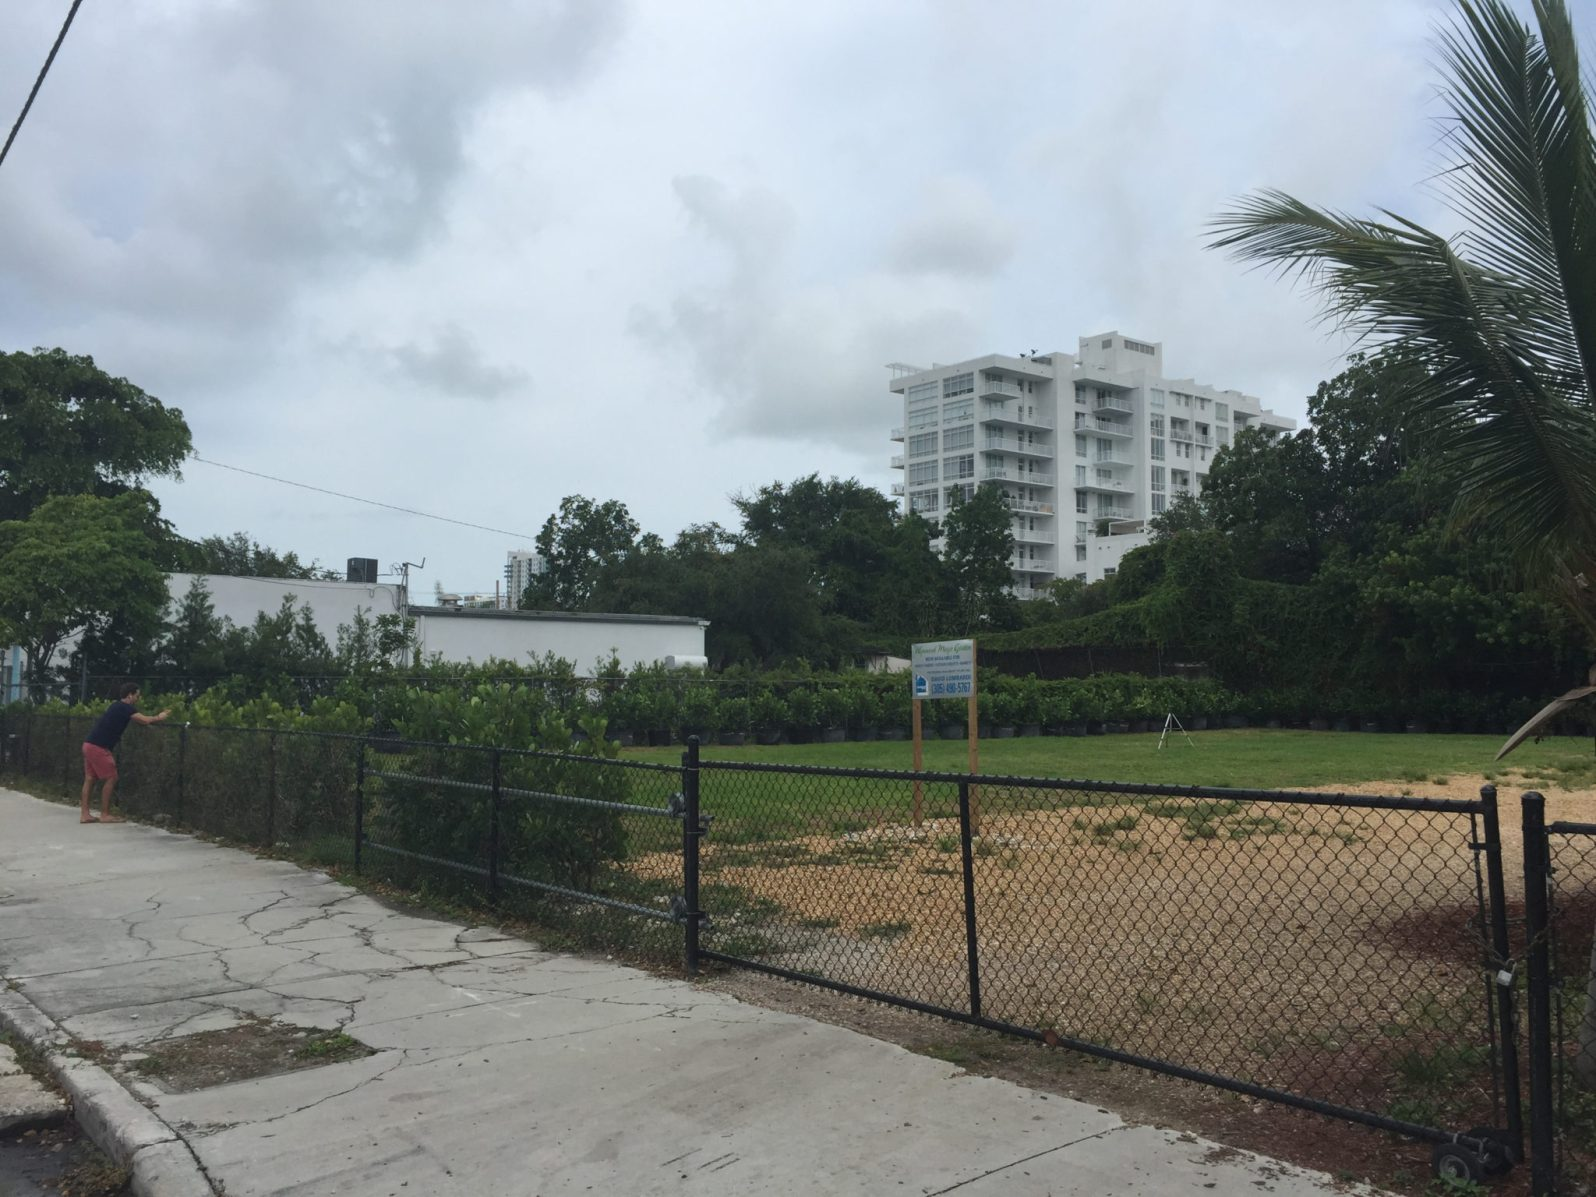 This is what the Wynwood Yard looked like when Della Heiman discovered it.